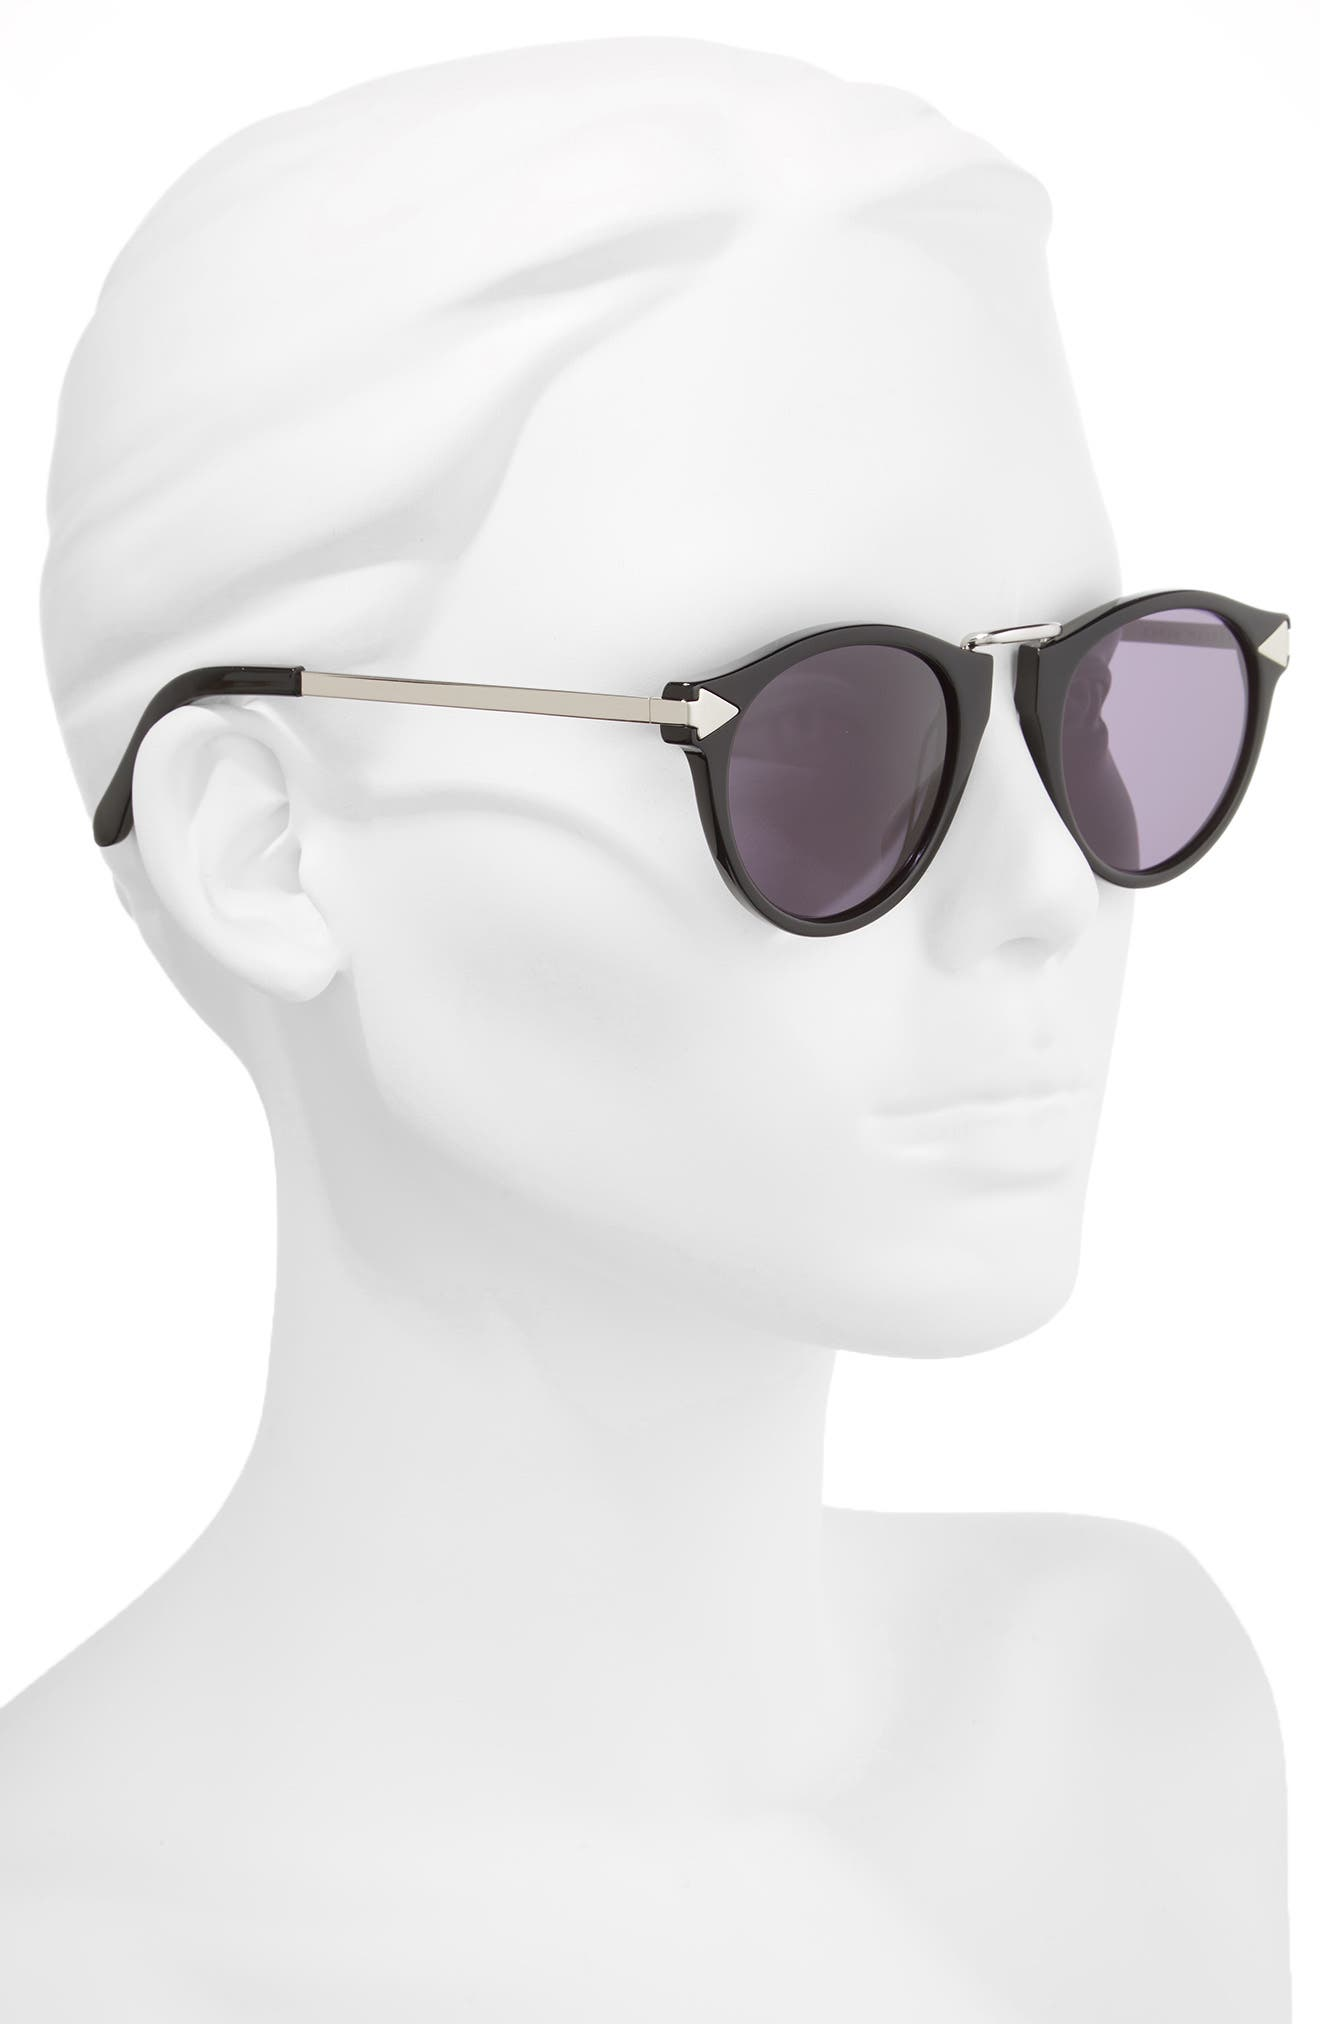 49mm Sunglasses,                             Alternate thumbnail 2, color,                             001